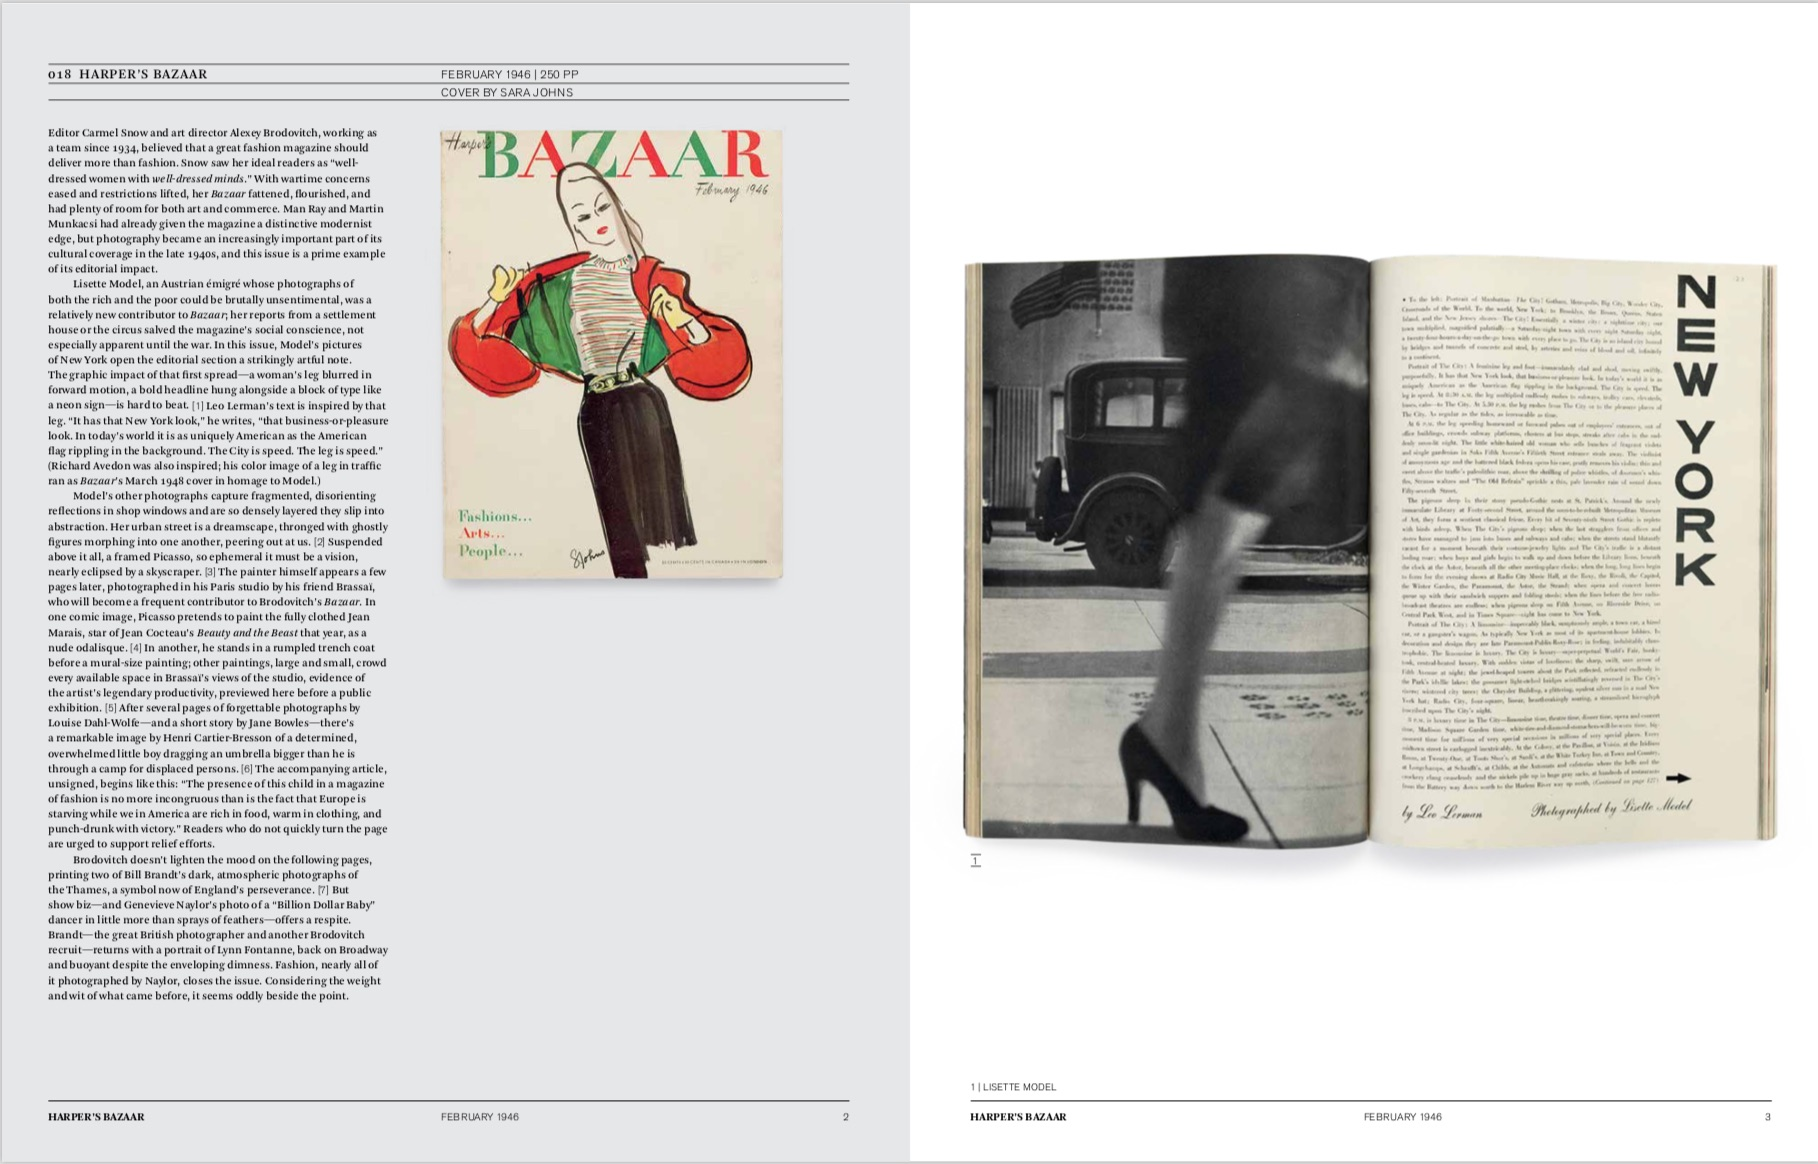 By Vince Aletti from Issues: A History of Photography in Fashion Magazines copyright Phaidon 2019